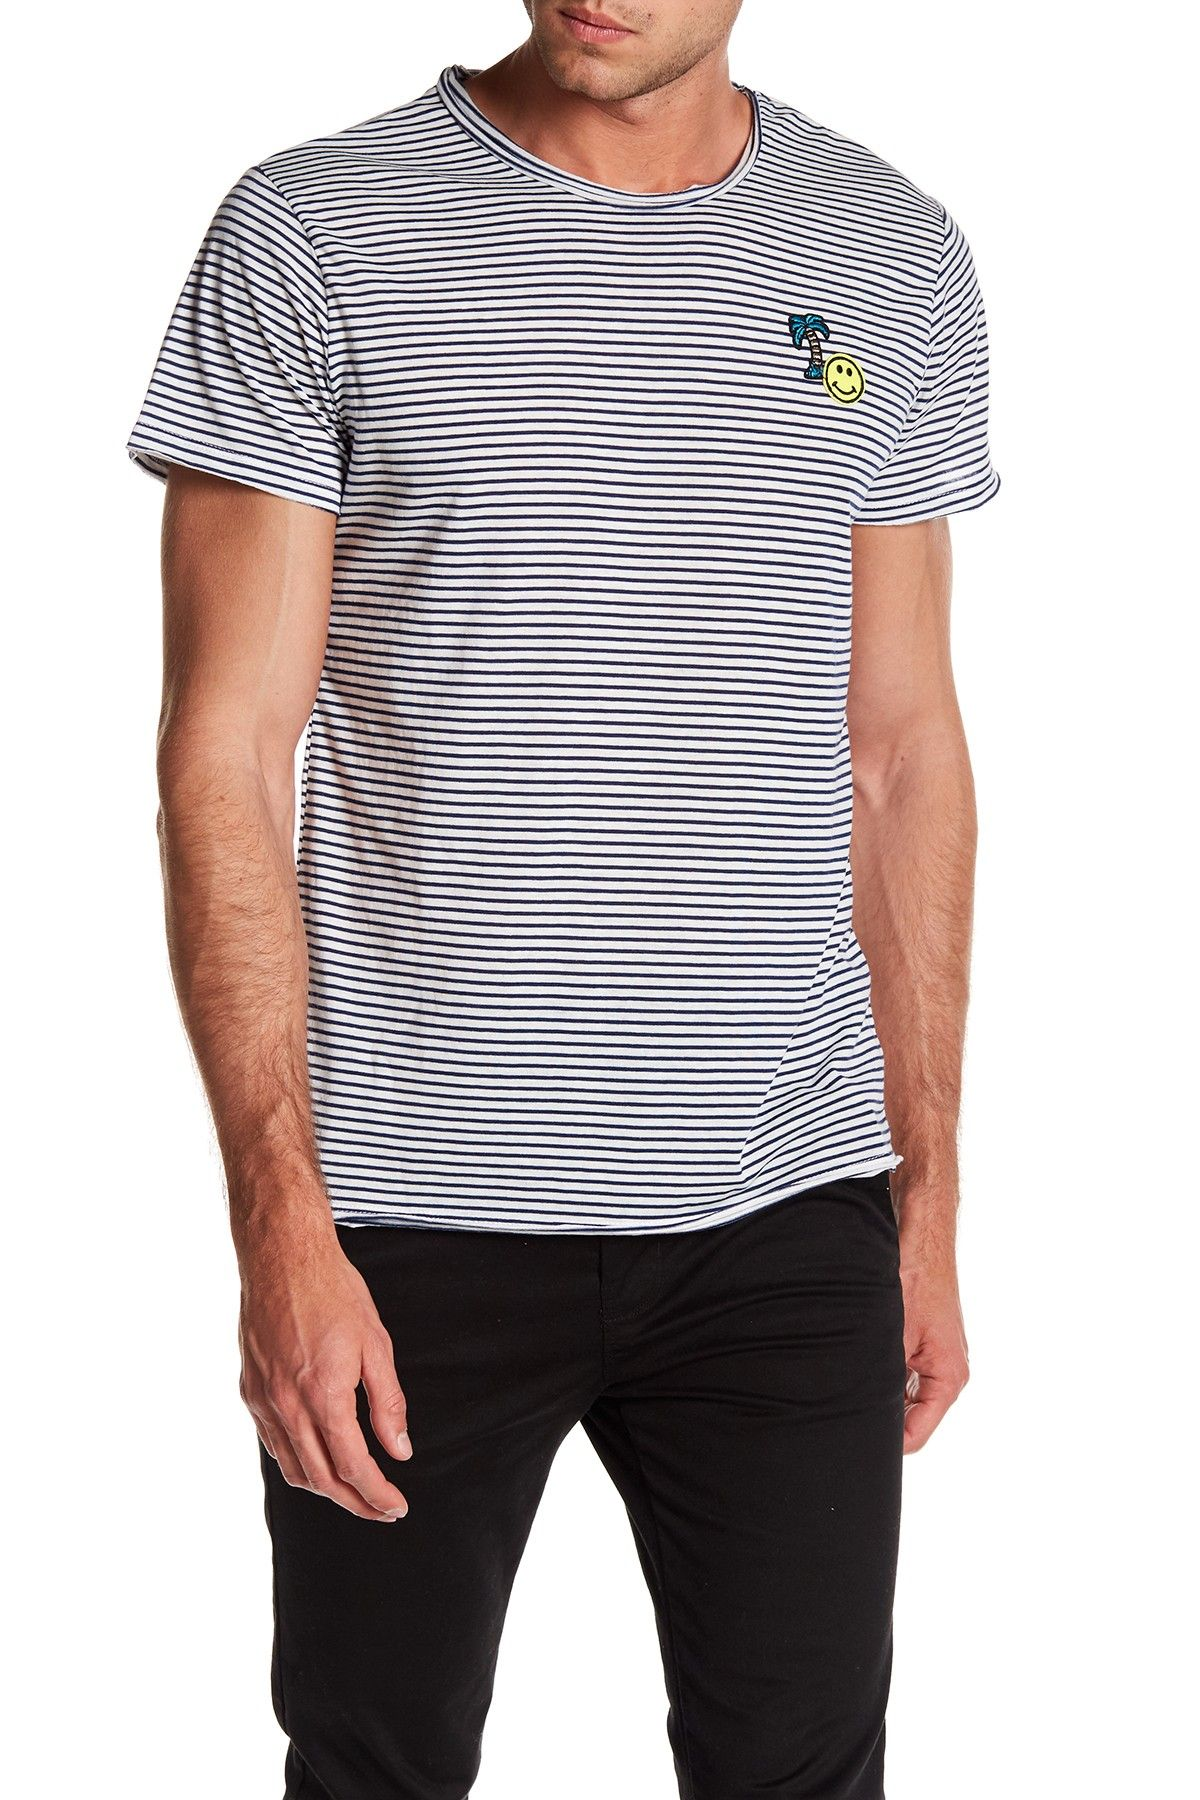 Cohesive Co Glendale Striped Tee Nordstrom Rack Mens